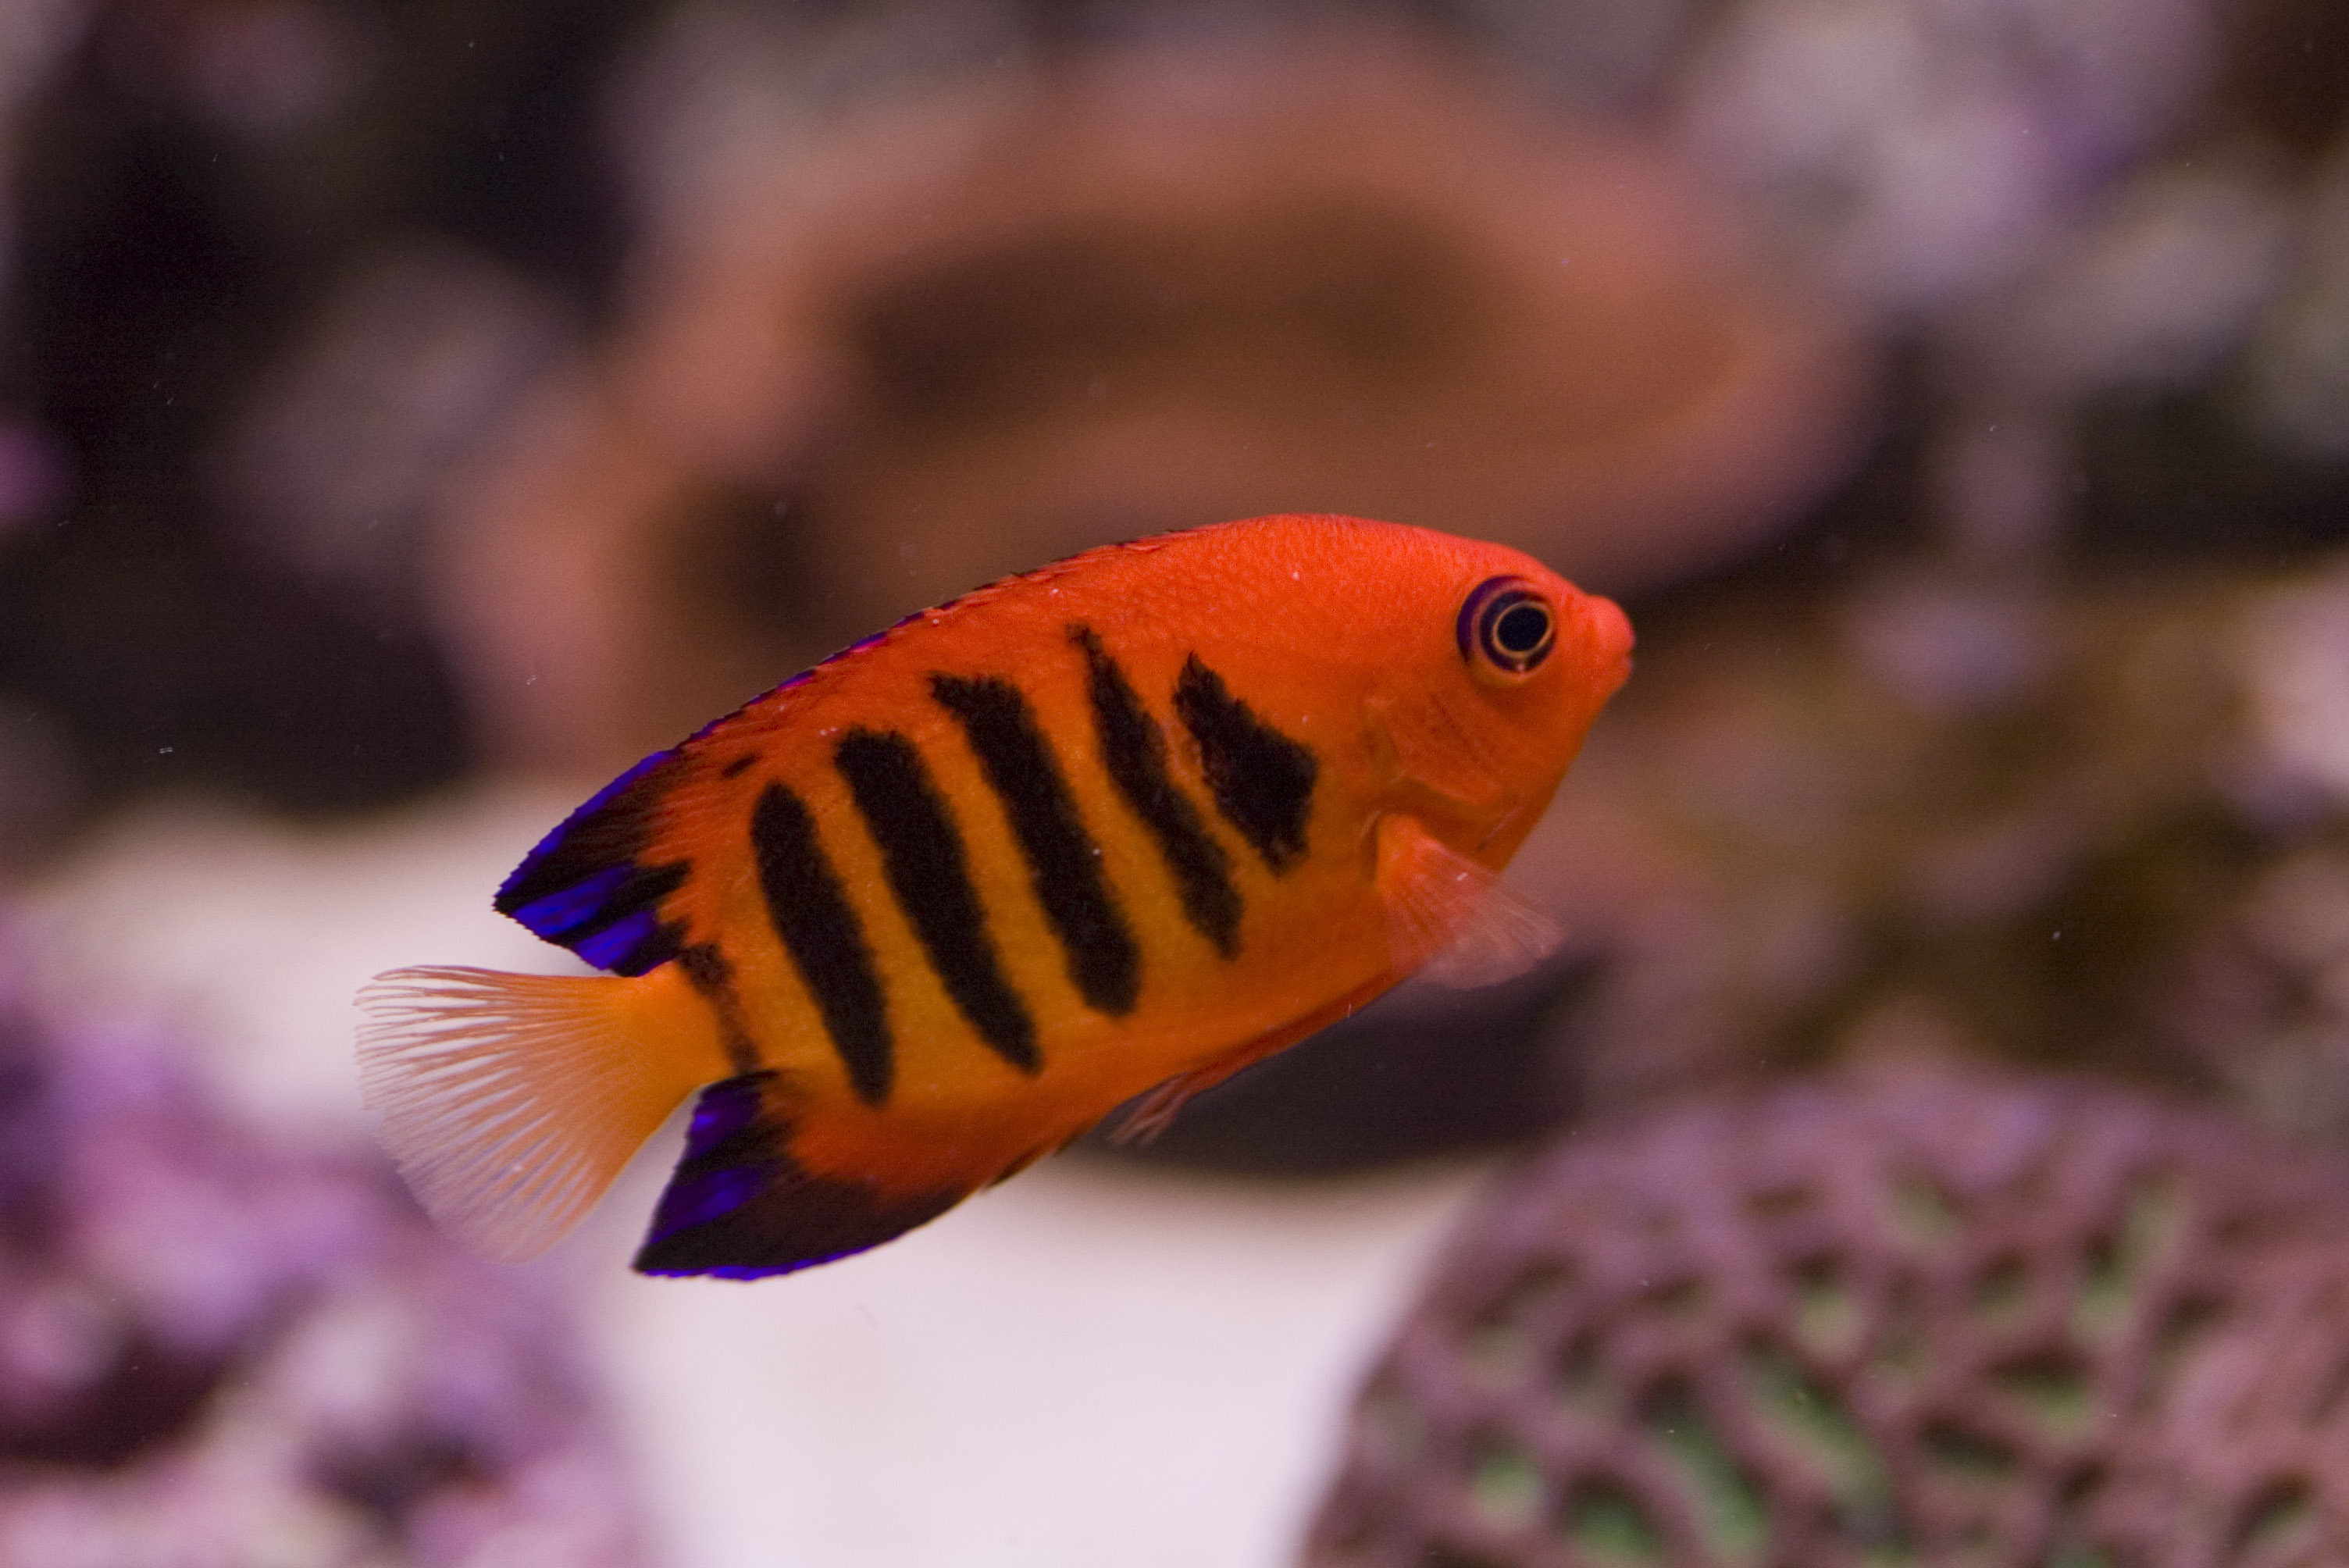 Free Stock Photo 1237-flame_angel_fish1460.jpg   freeimageslive